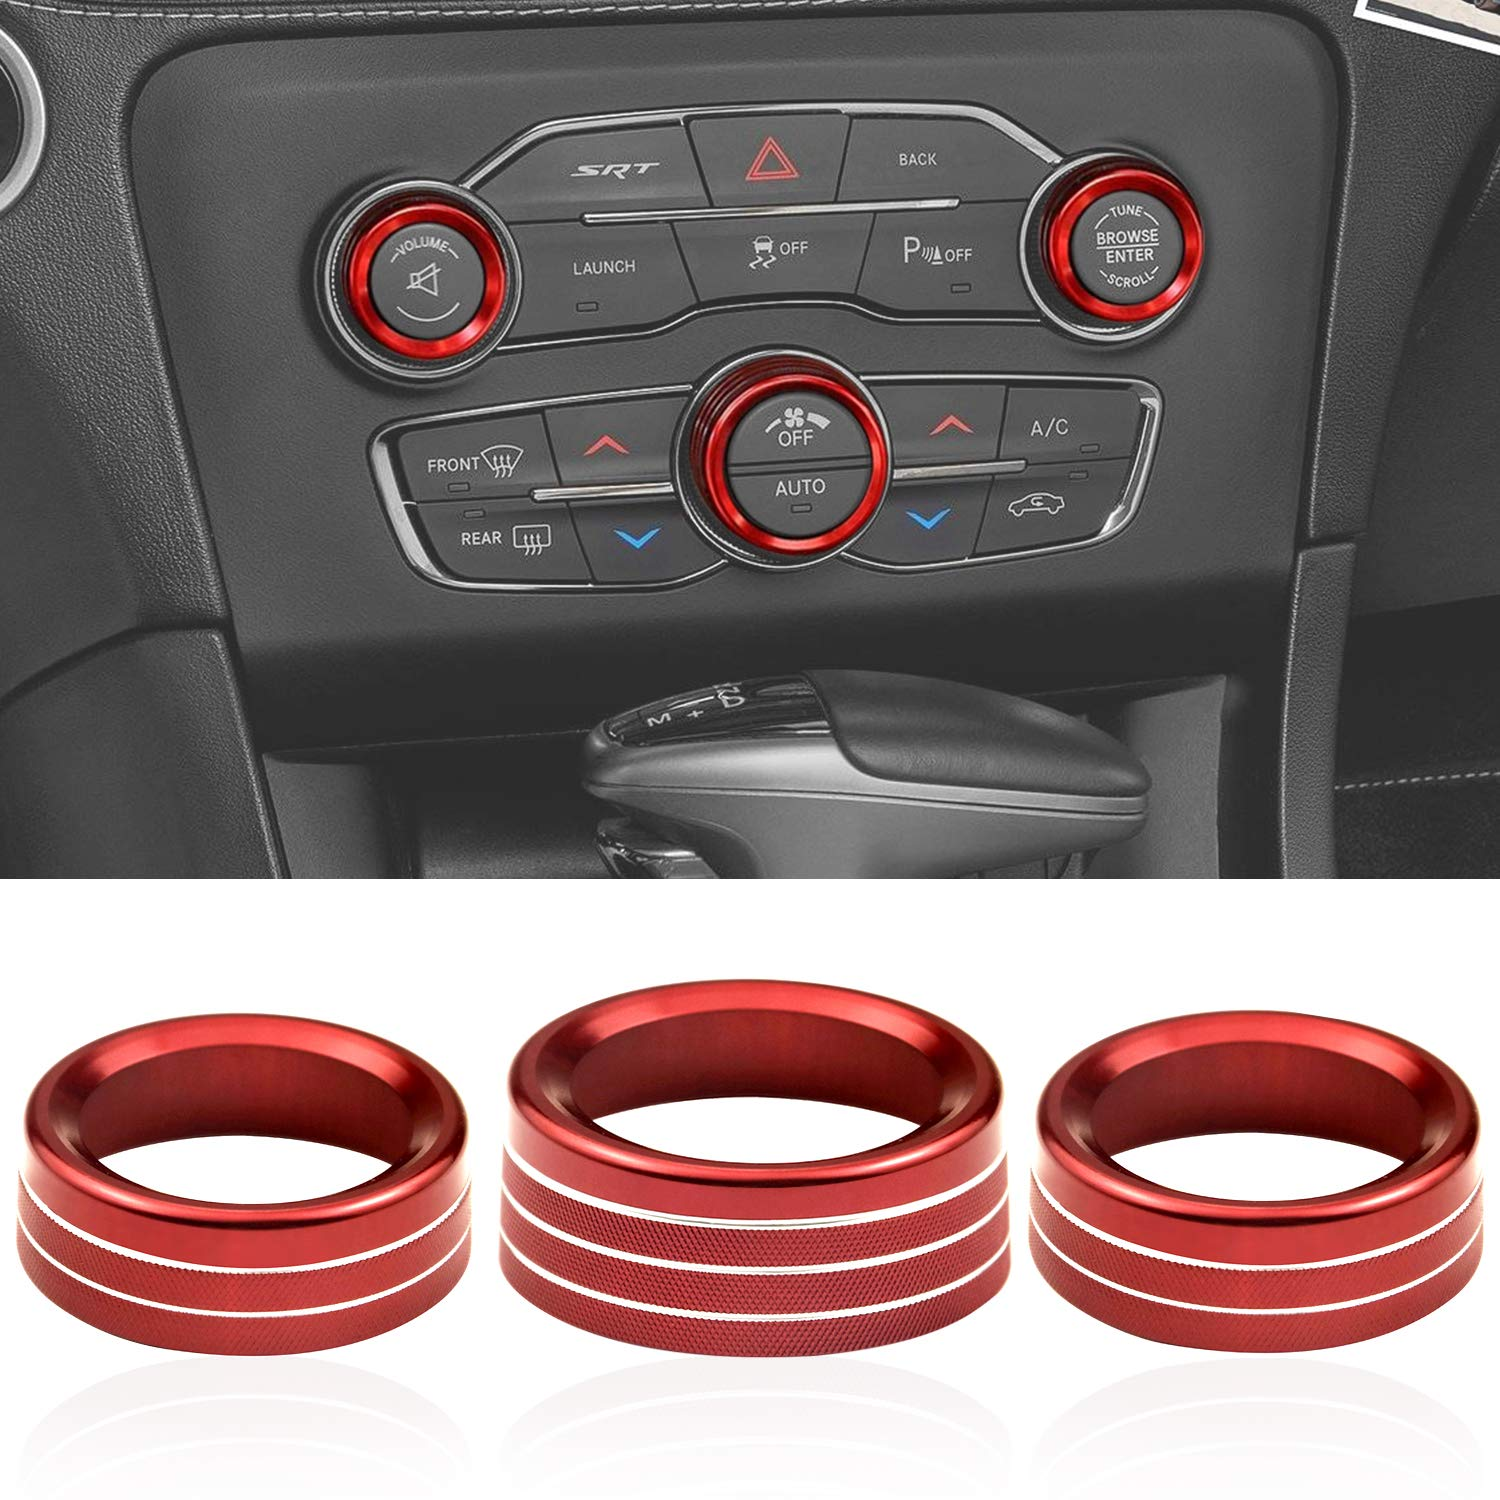 Bolaxin for Challenger Charger Air Conditioner Switch CD Button Knob for Dodge Challenger Charger 2015-2020 Aluminum Alloy Red